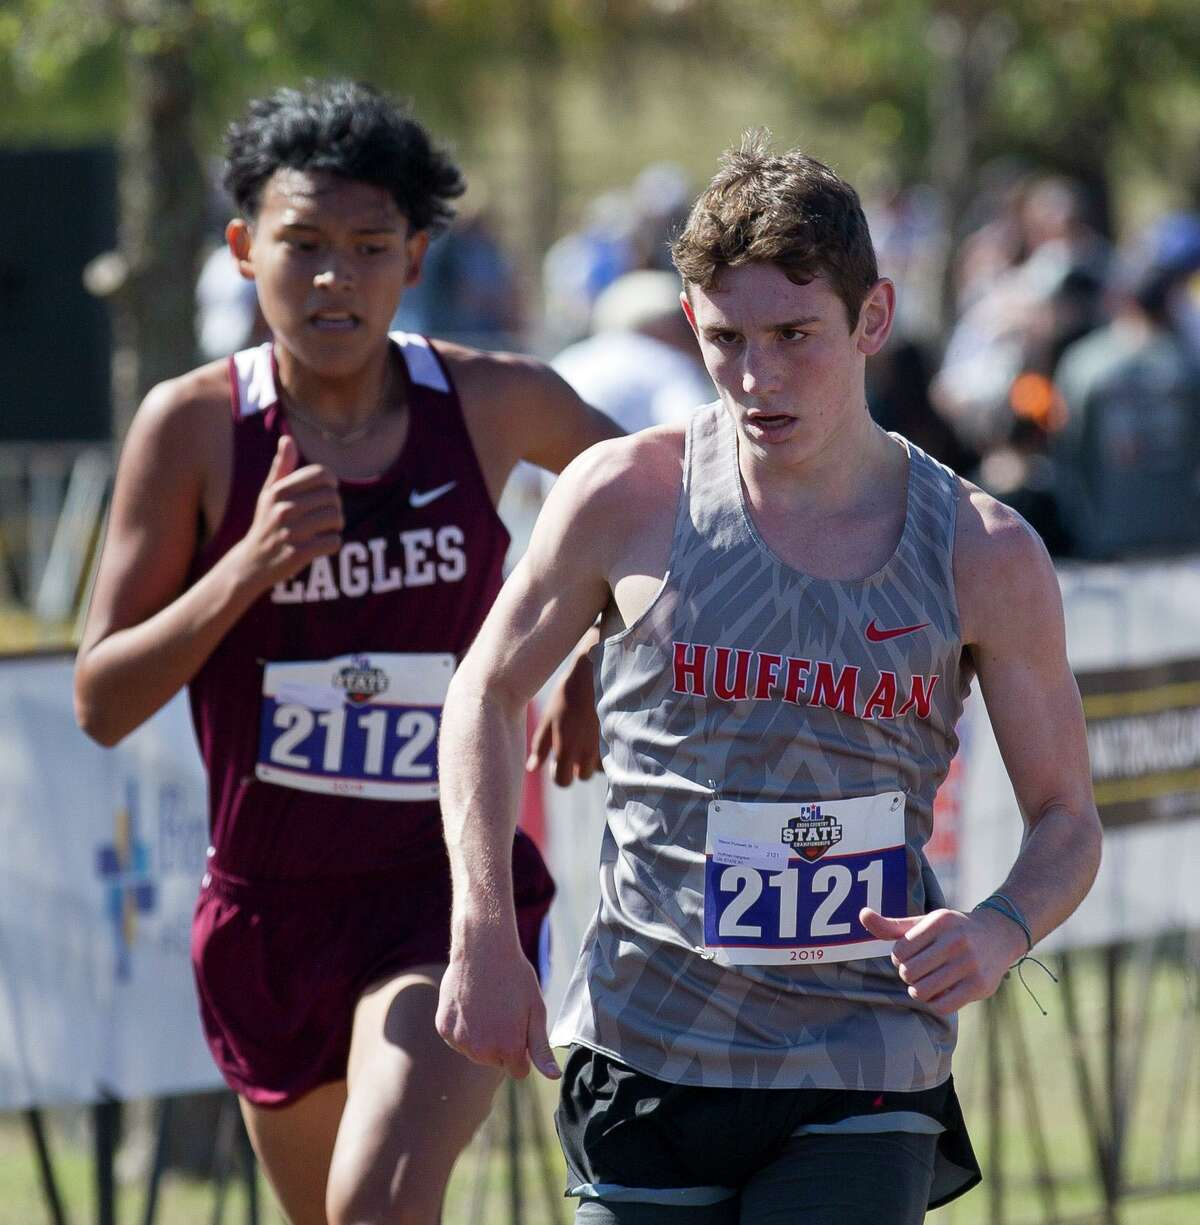 Mason Purswell of Huffman Hargrave competes in the Class 4A boys race during the UIL State Cross Country Championships at Old Settlers Park, Saturday, Nov. 9, 2019, in Round Rock.